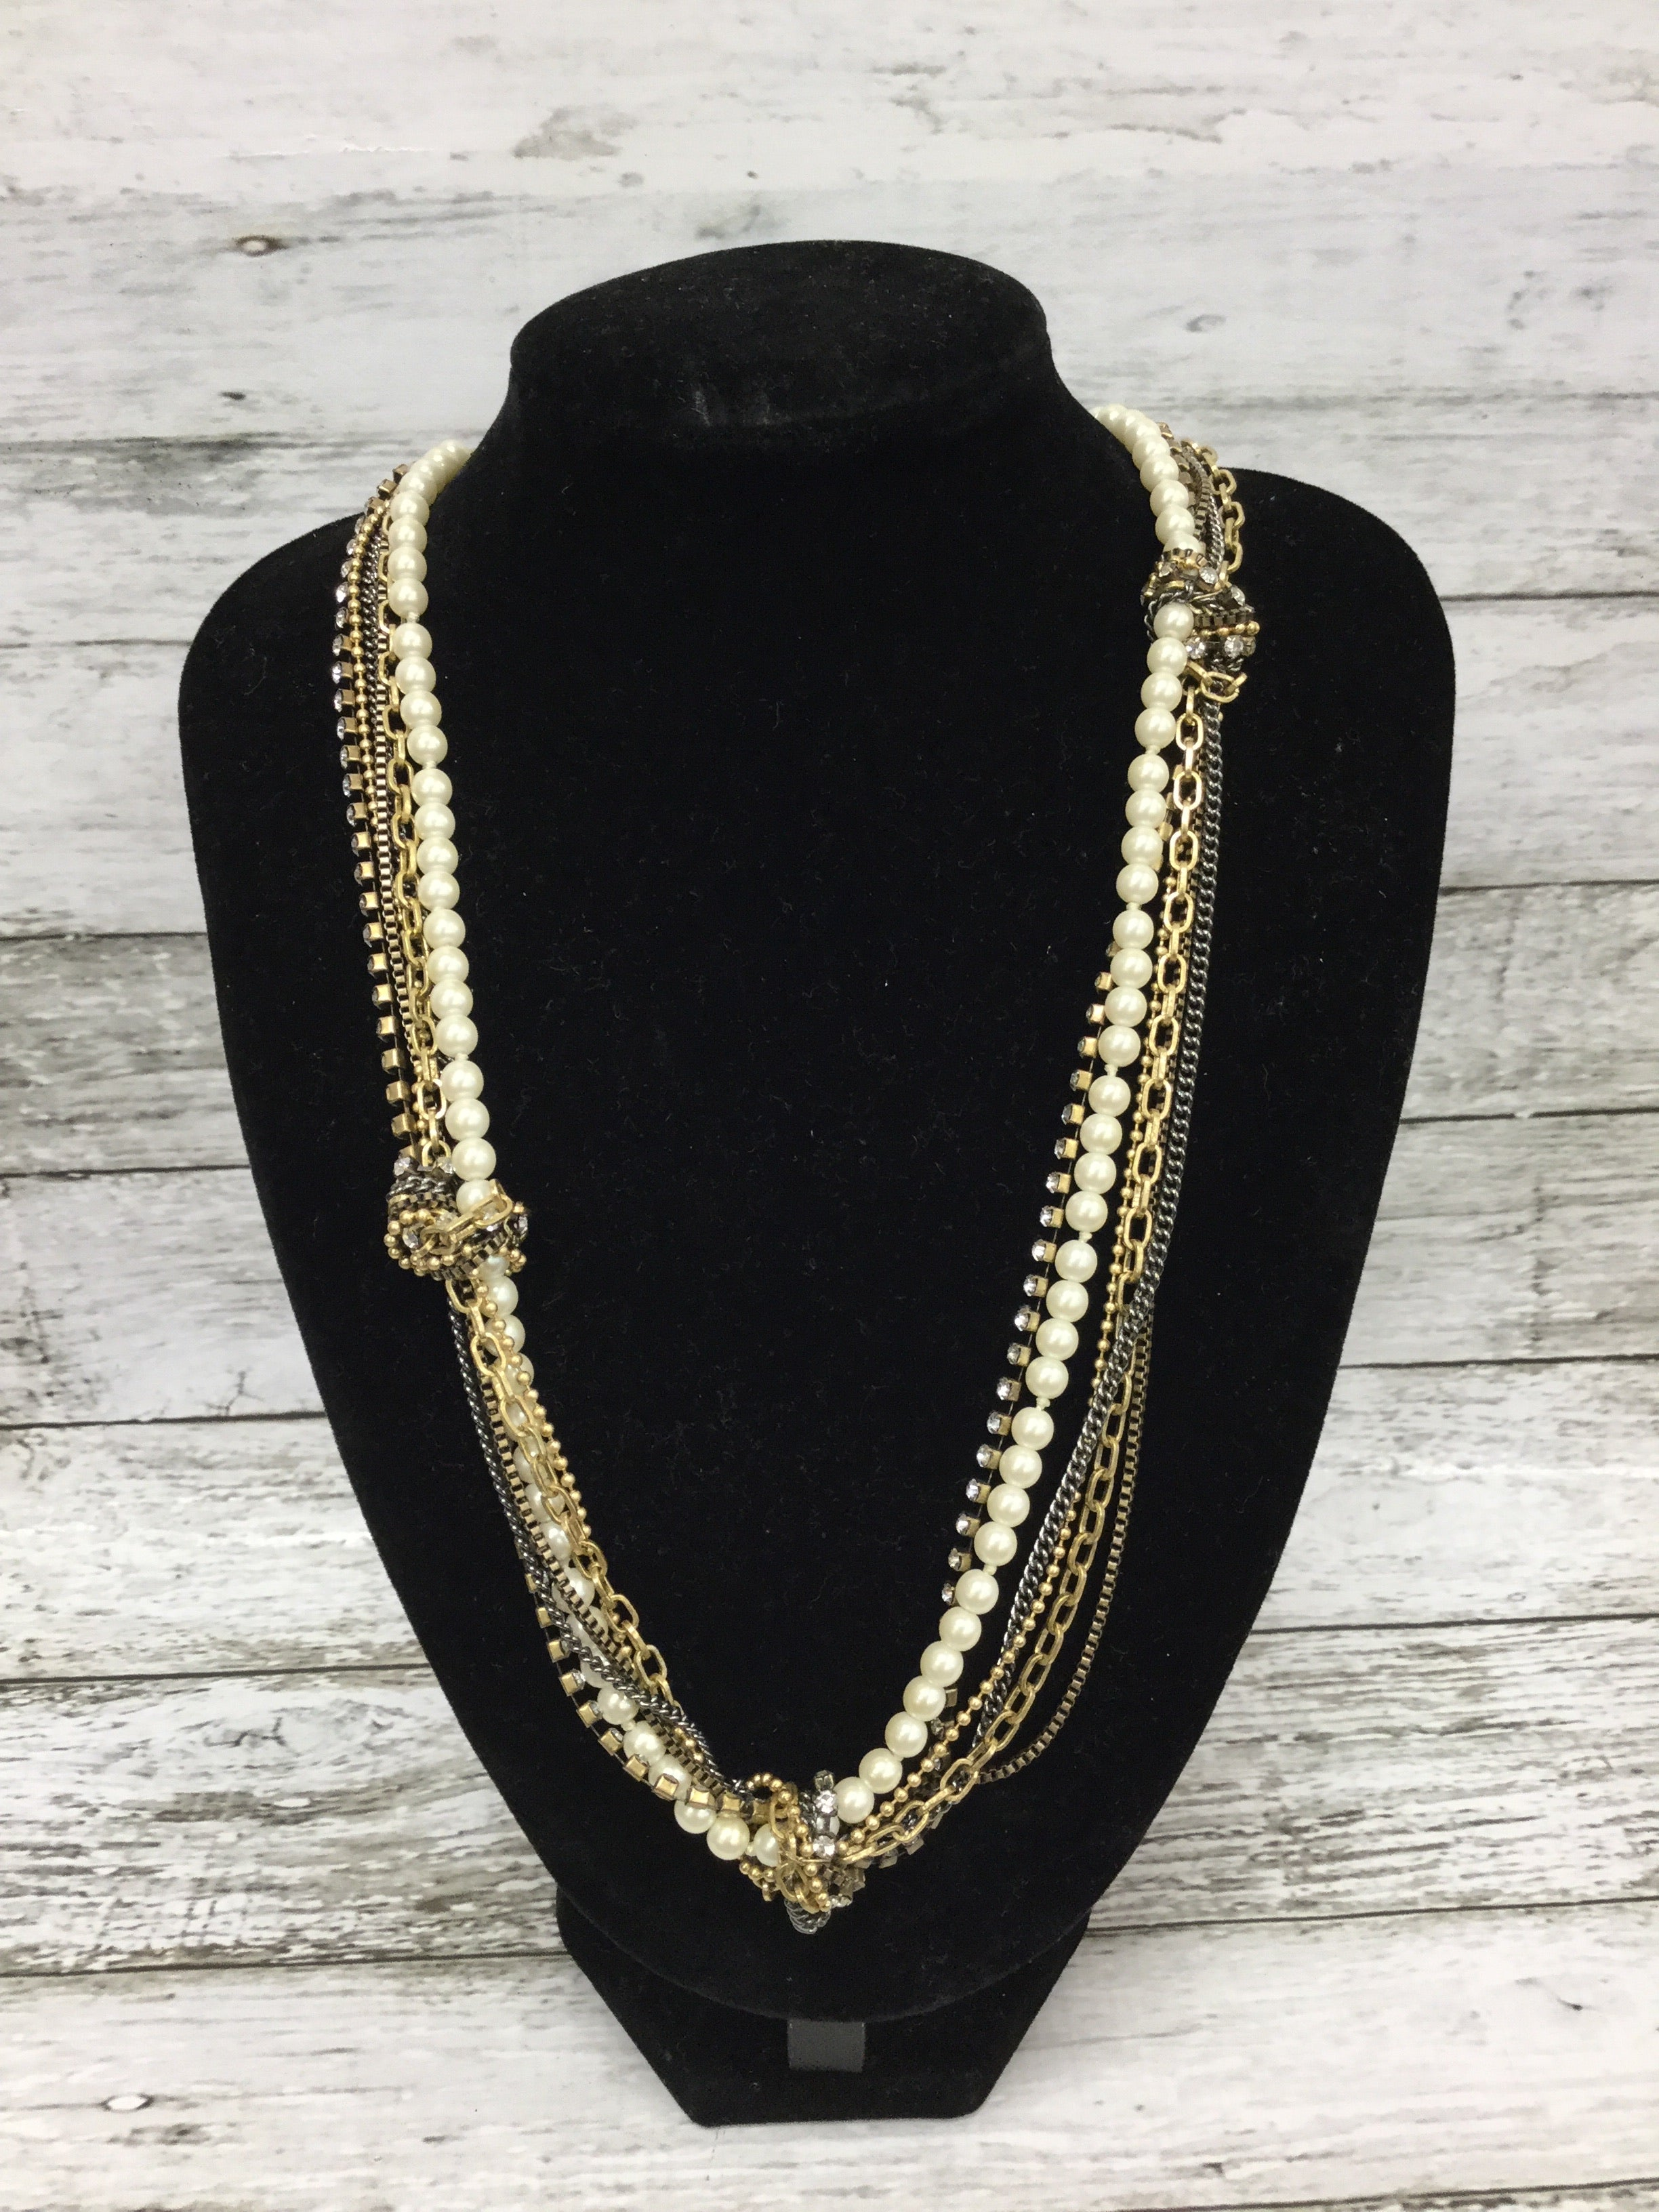 Primary Photo - BRAND: J CREW , STYLE: NECKLACE , COLOR: GOLD , SKU: 127-2767-89764, , GOLD AND PEARL J CREW NECKLACE IN GREAT CONDITION!